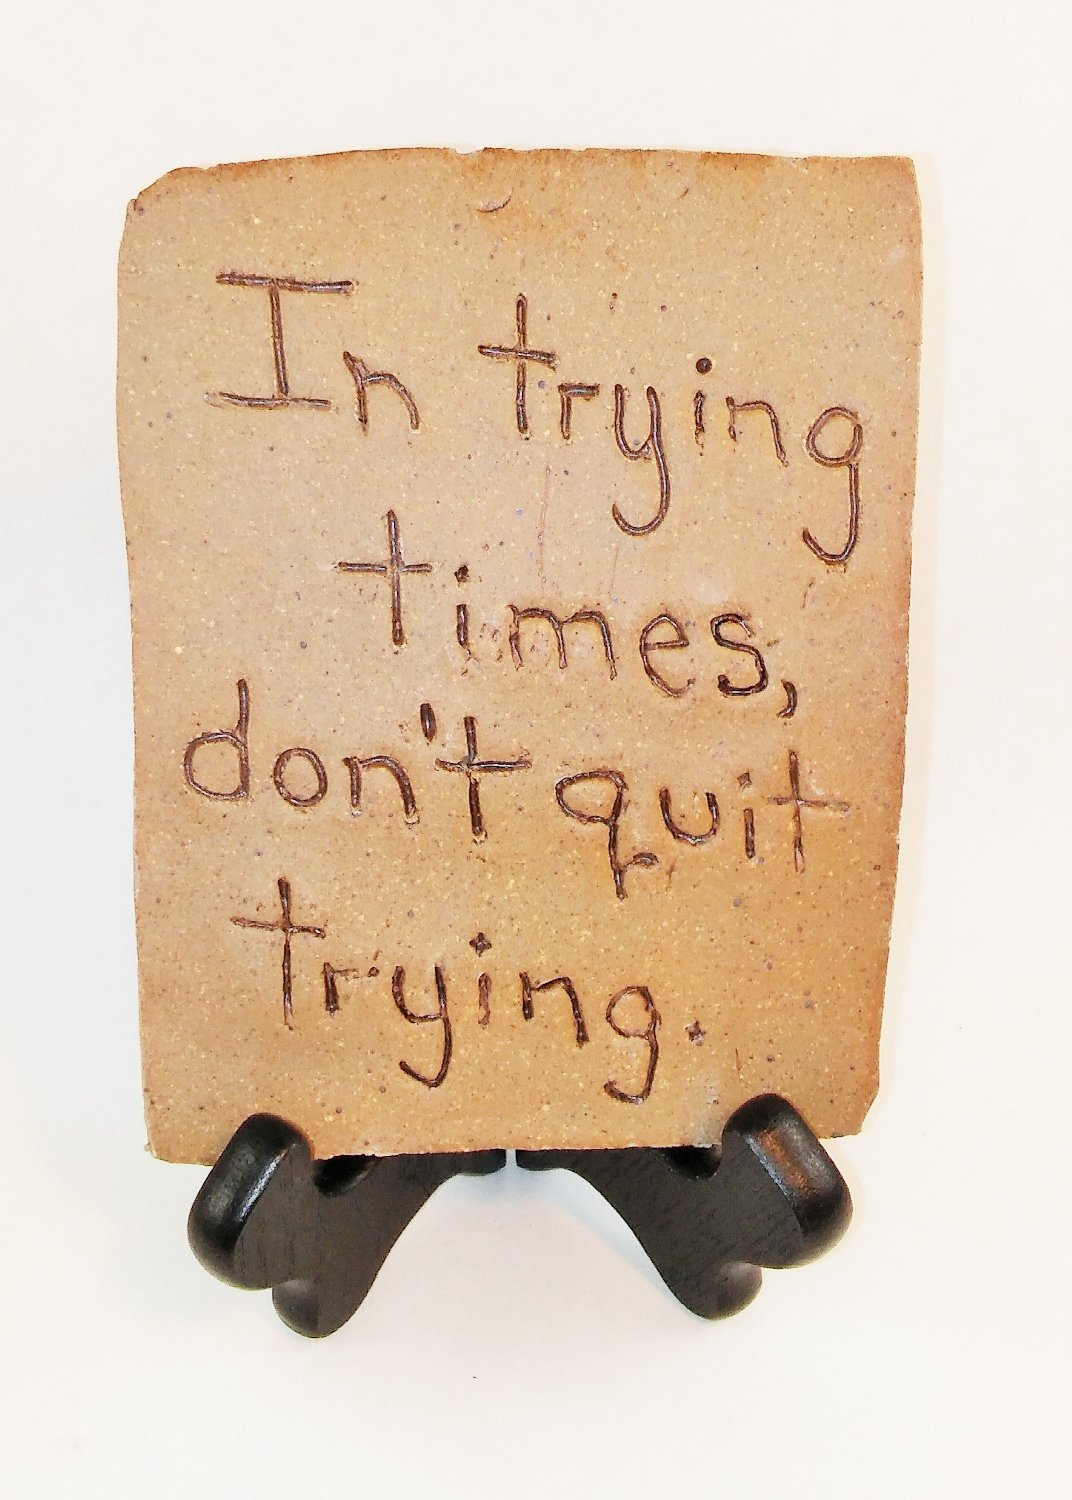 "Aunt Chris' Pottery - Desk Top - Rustic Bible Clay Sign - With Unique Biblical Words Or Quotes ""In trying times, don't quit trying."" - Sign Is Sitting On An Easel - Sign Is Also Hand Etched"